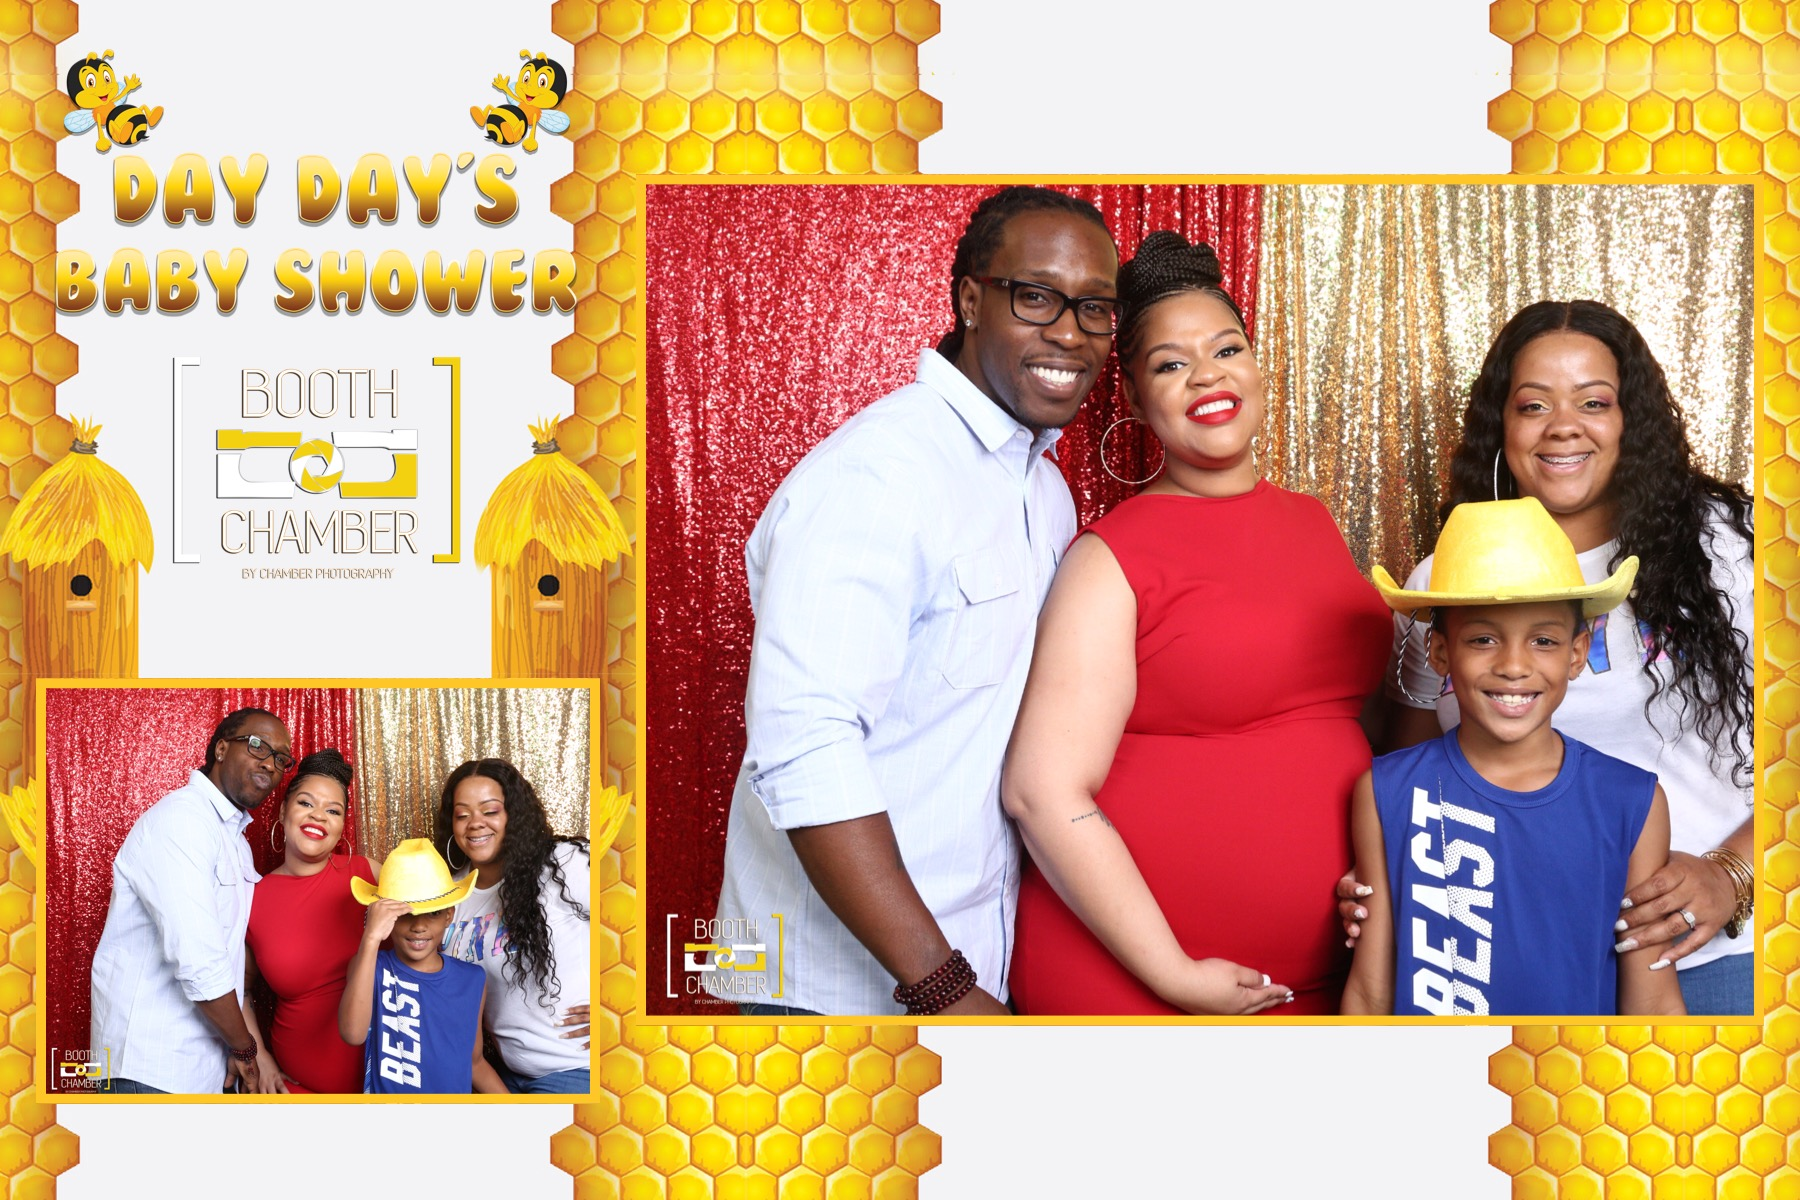 Booth Chamber Photo Booth Baby Shower Chamber Hart Photography_49.jpeg